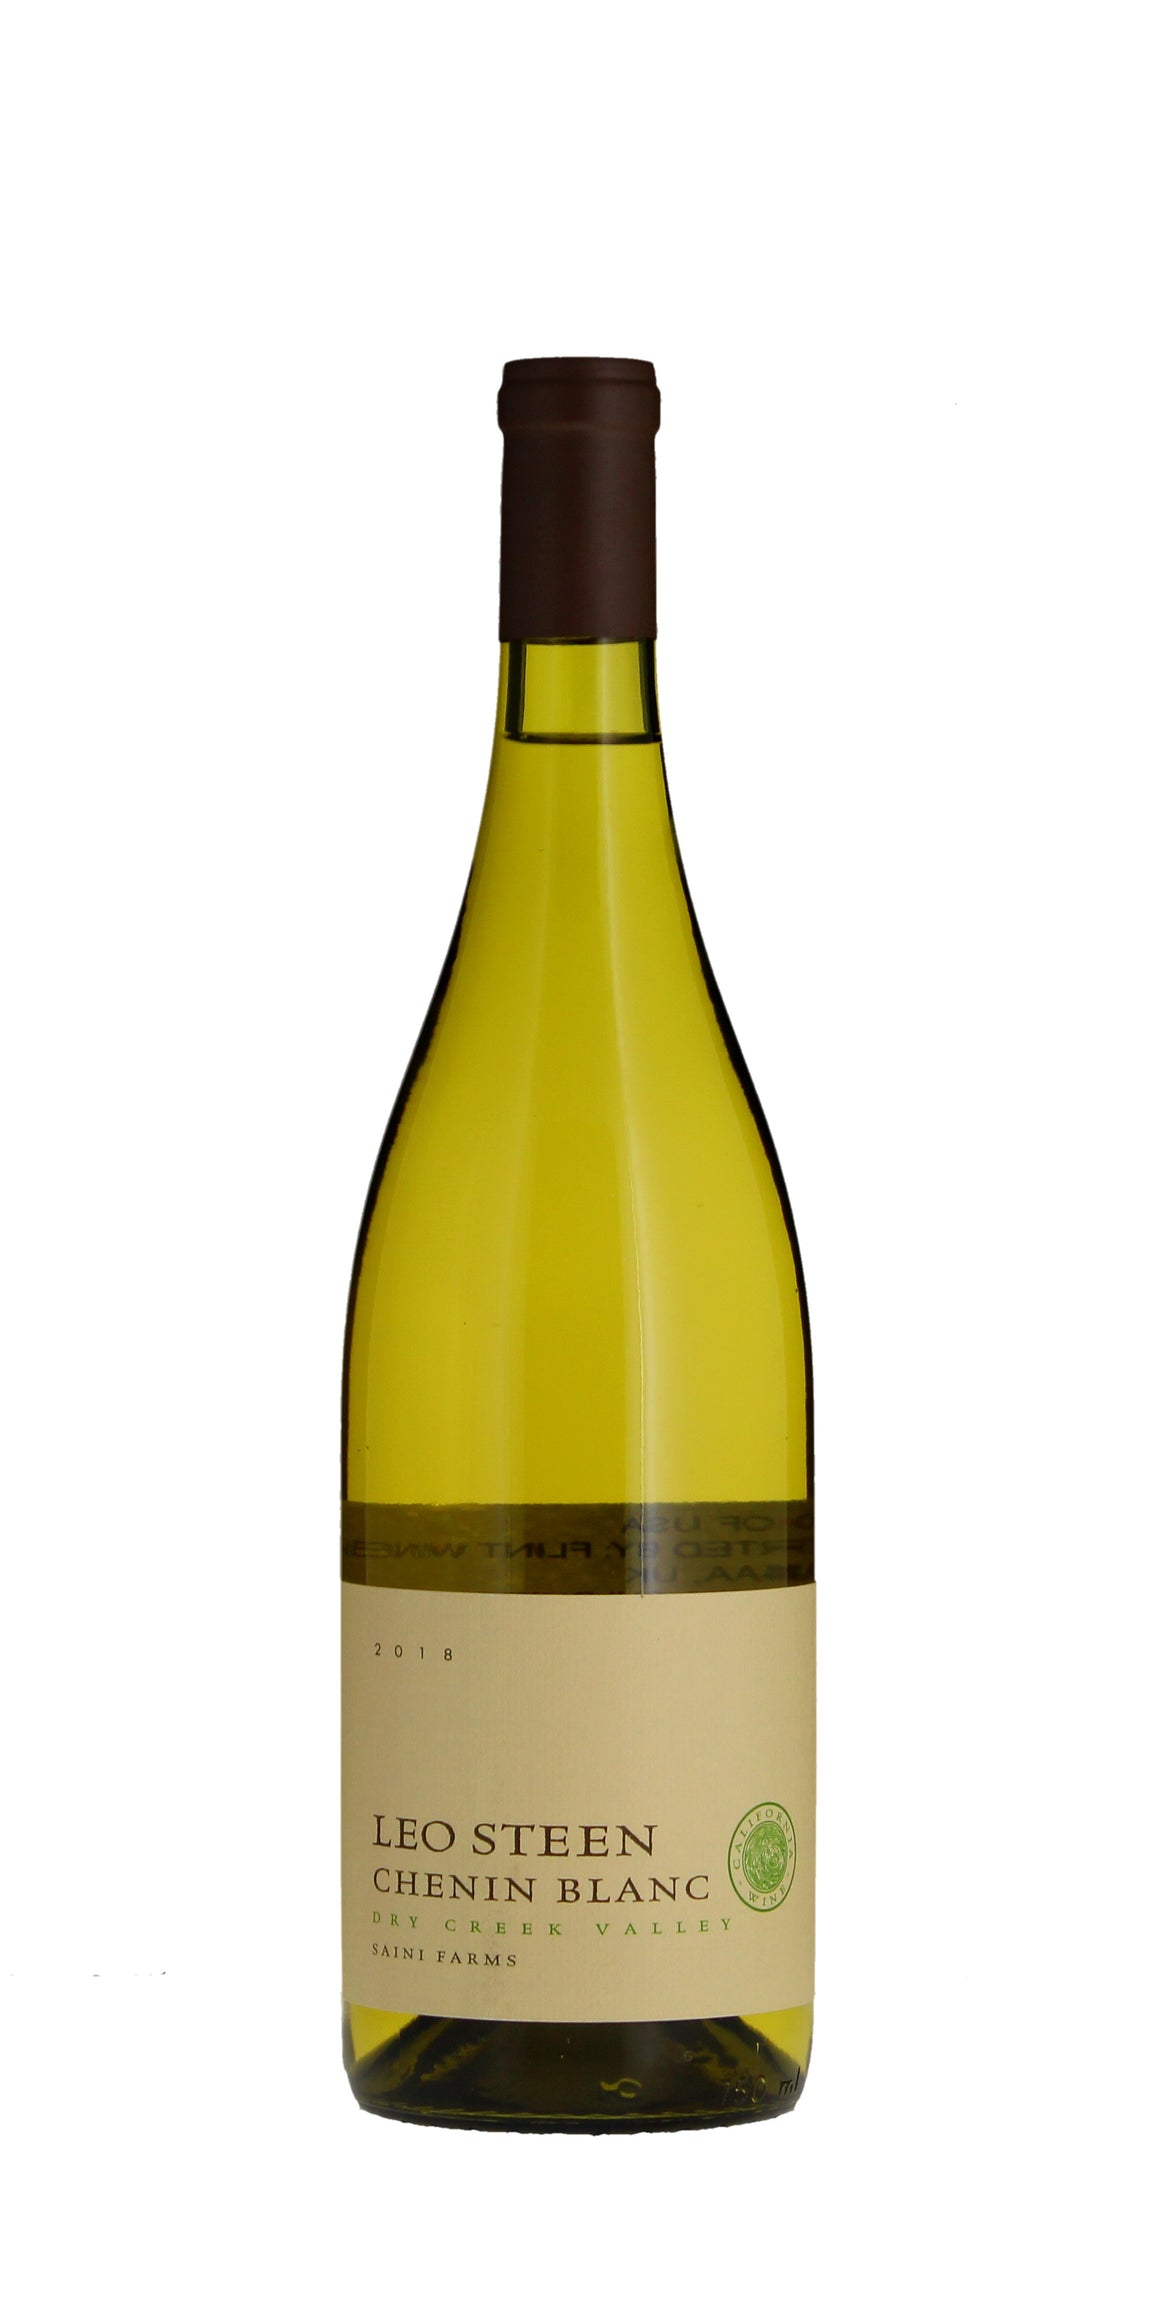 Leo Steen Chenin Blanc Dry Creek Valley 2018